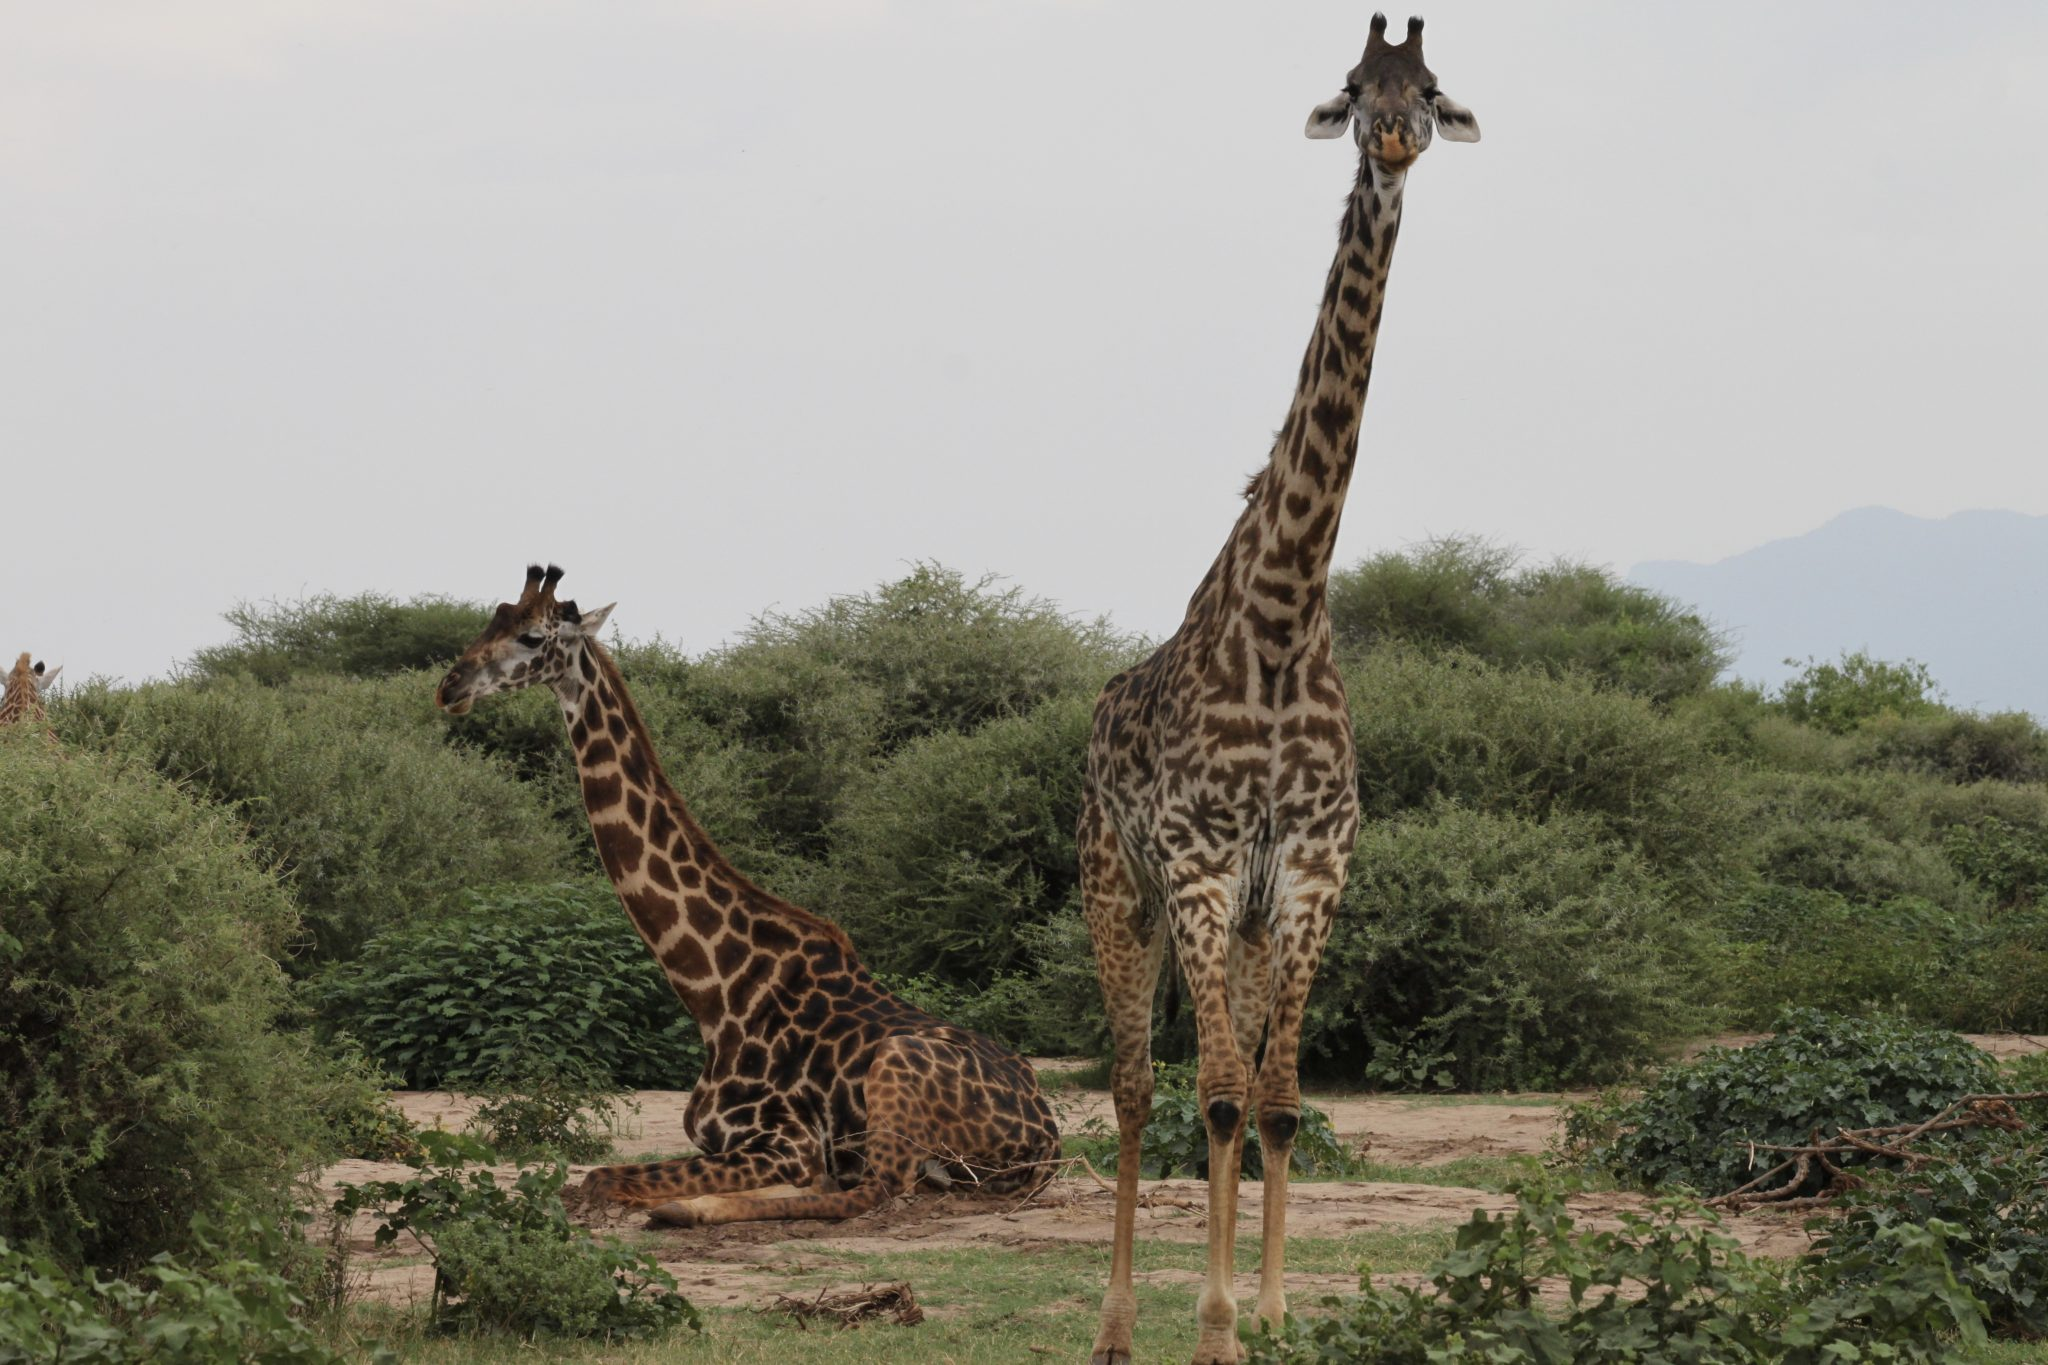 safari, tanzania, africa, serengeti, animals, giraffe